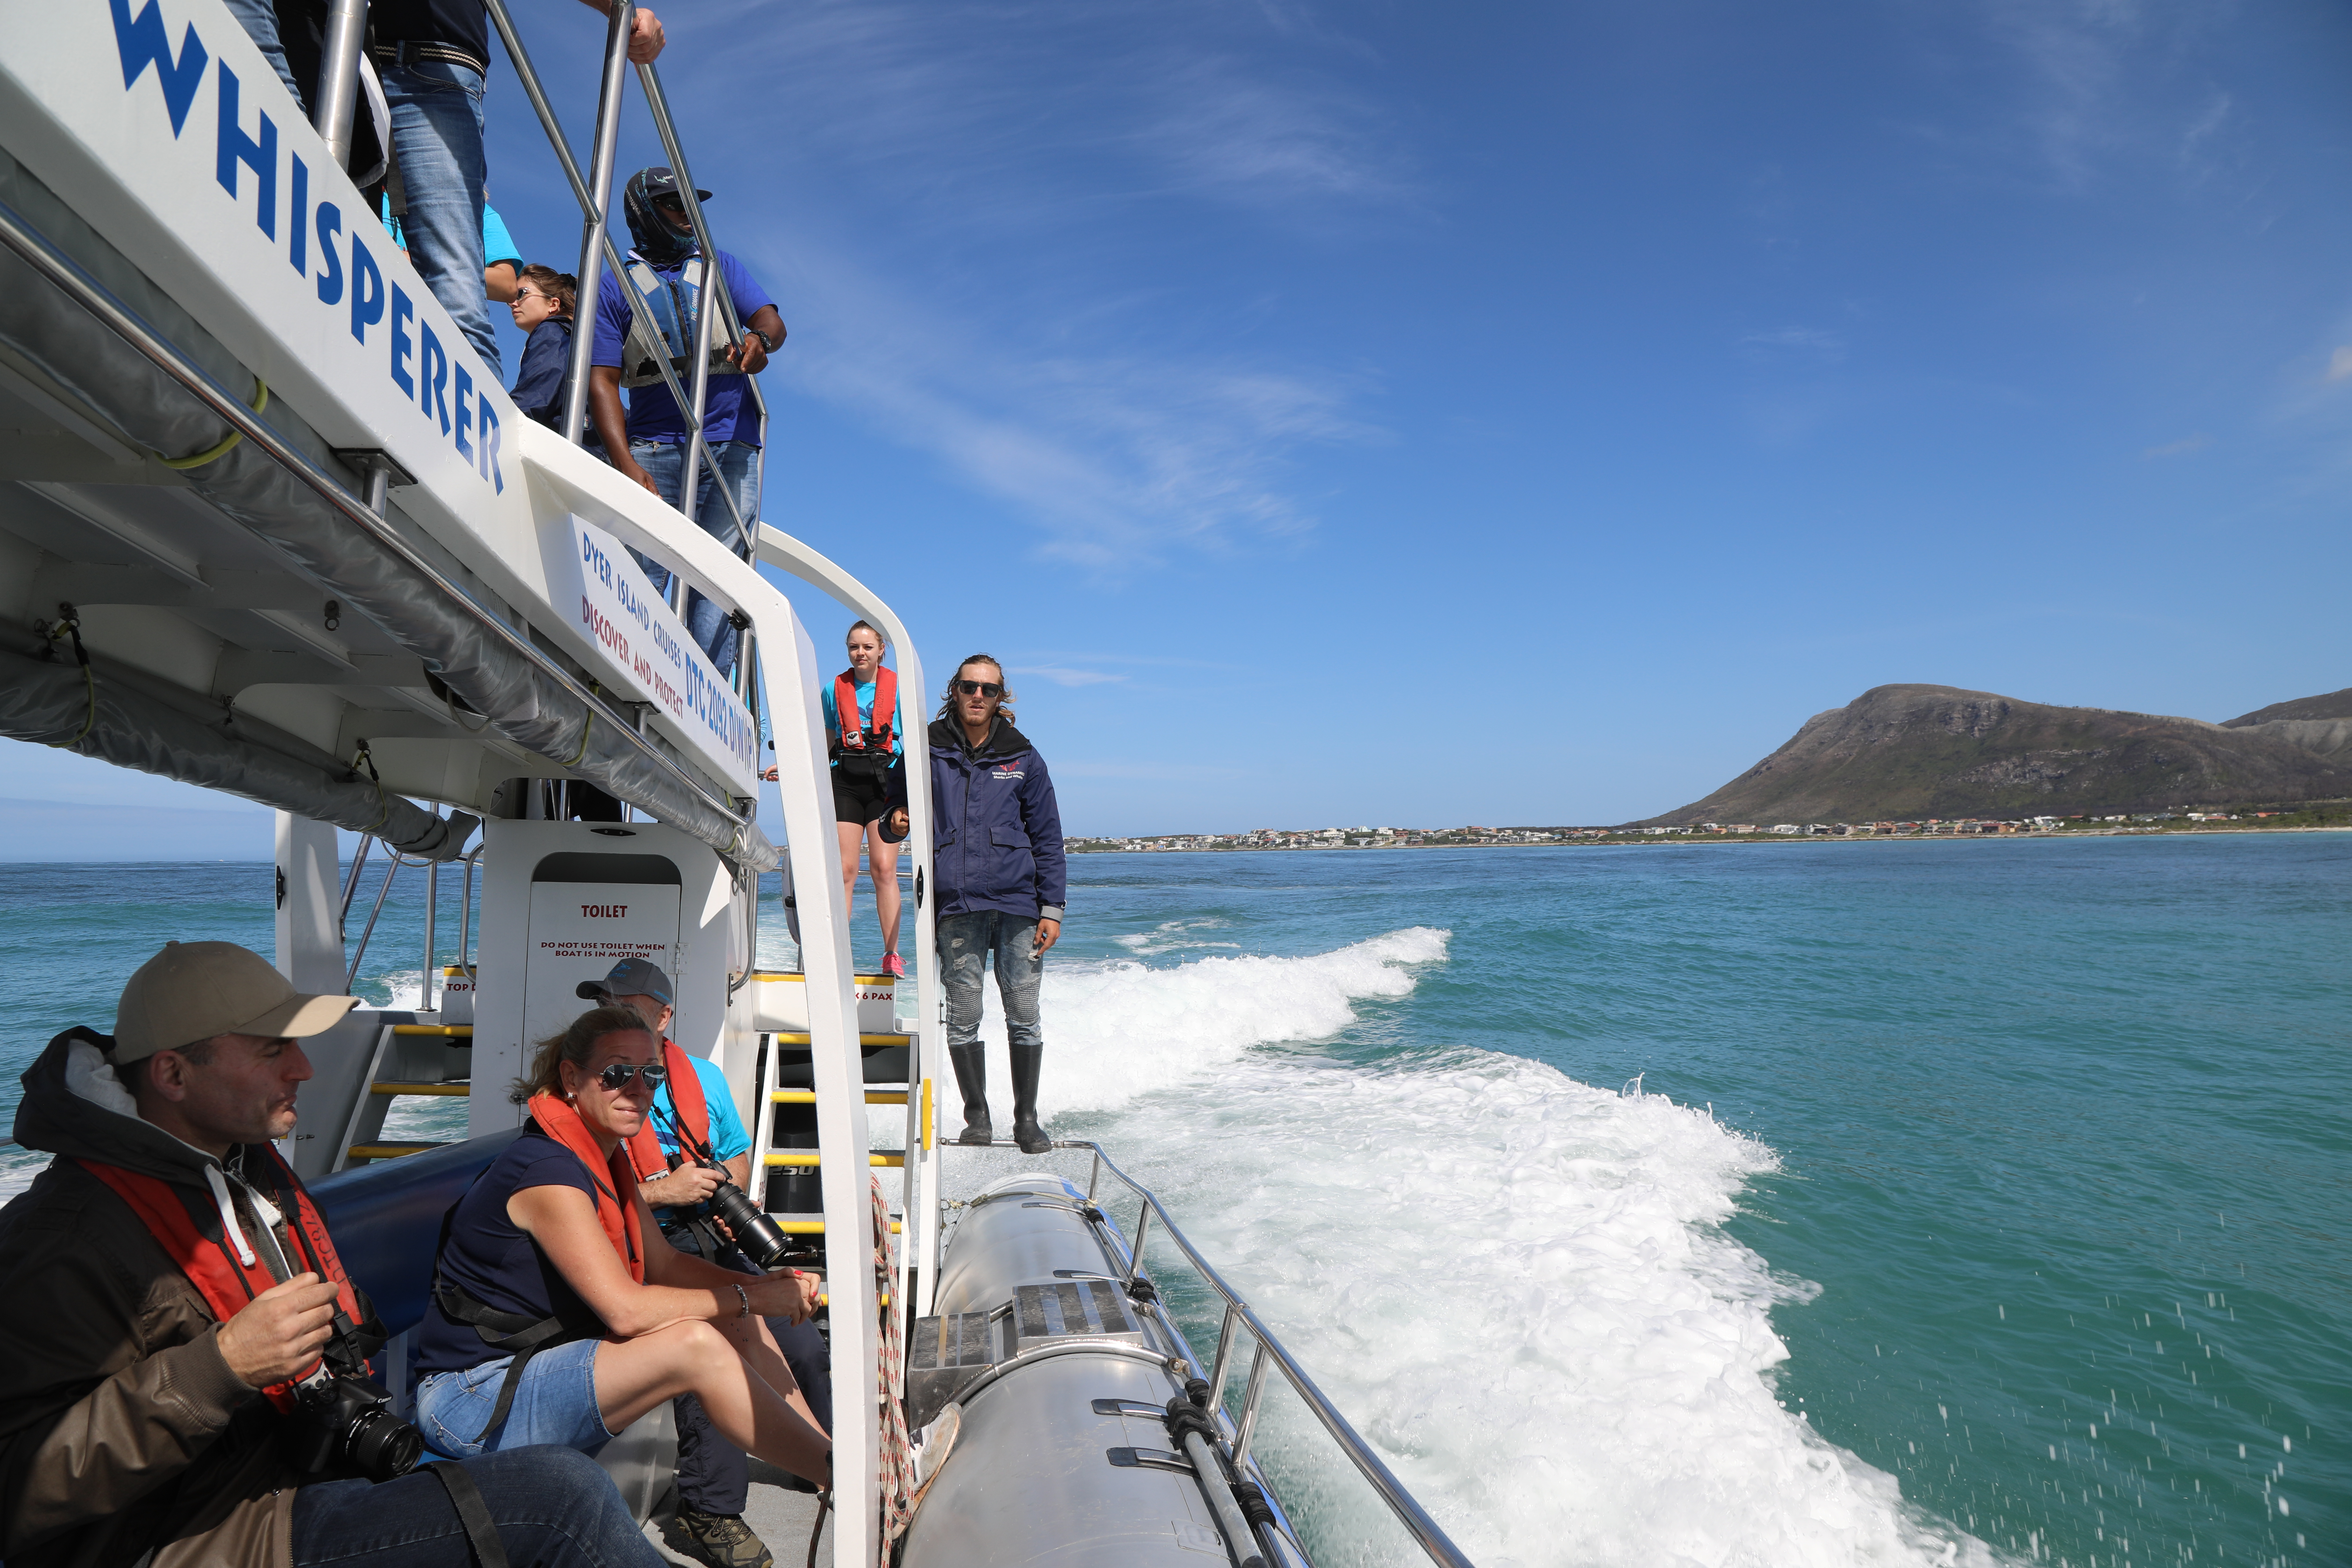 The dolphins are back! Eco tour on whale whisperer 27 January 2020